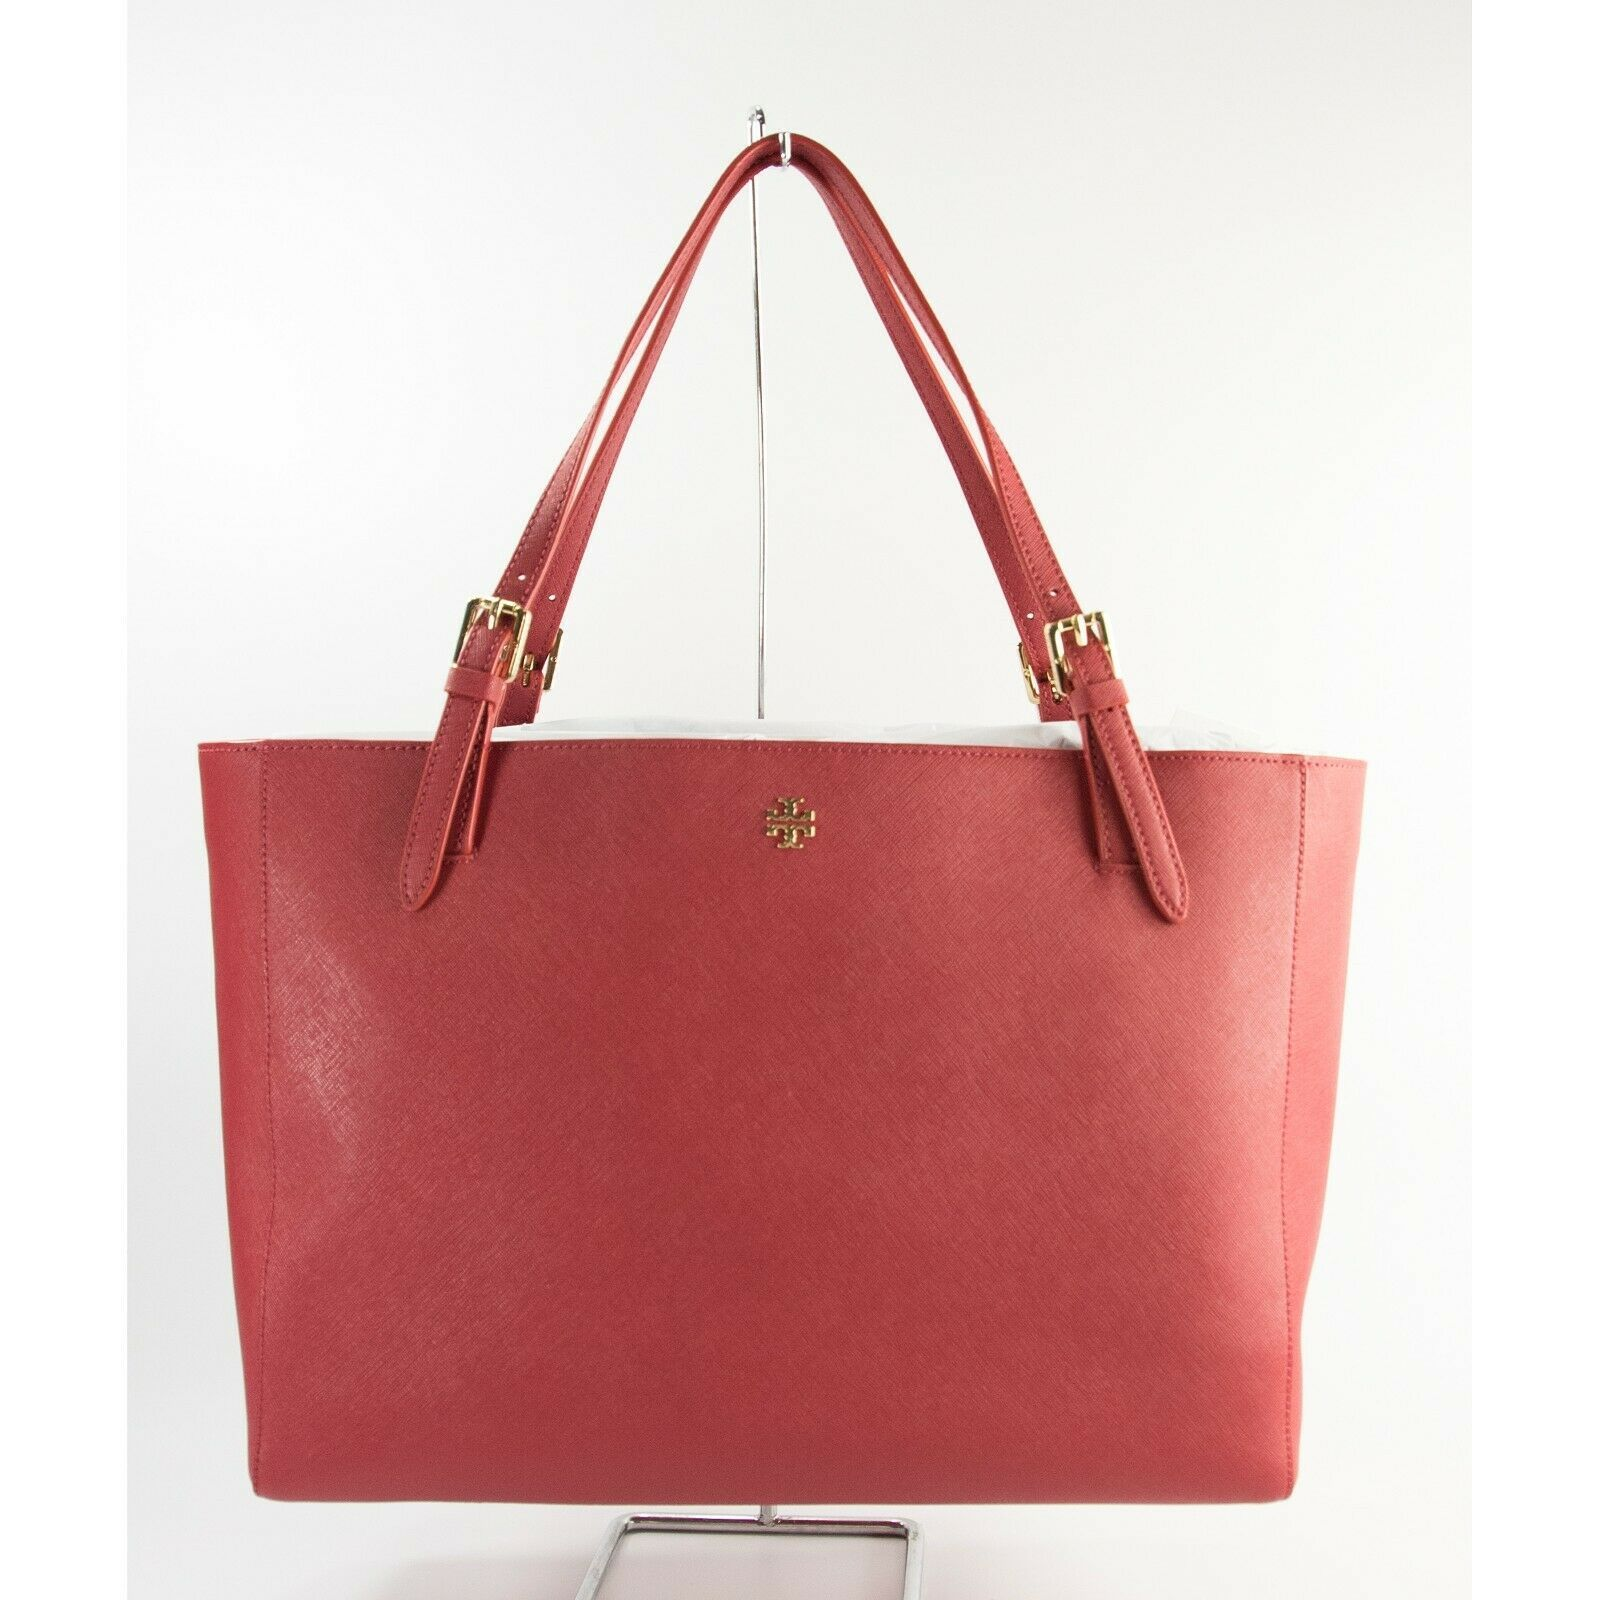 Tory Burch Robinson Kir Royal Red Saffiano Leather York Buckle Tote Bag NWT